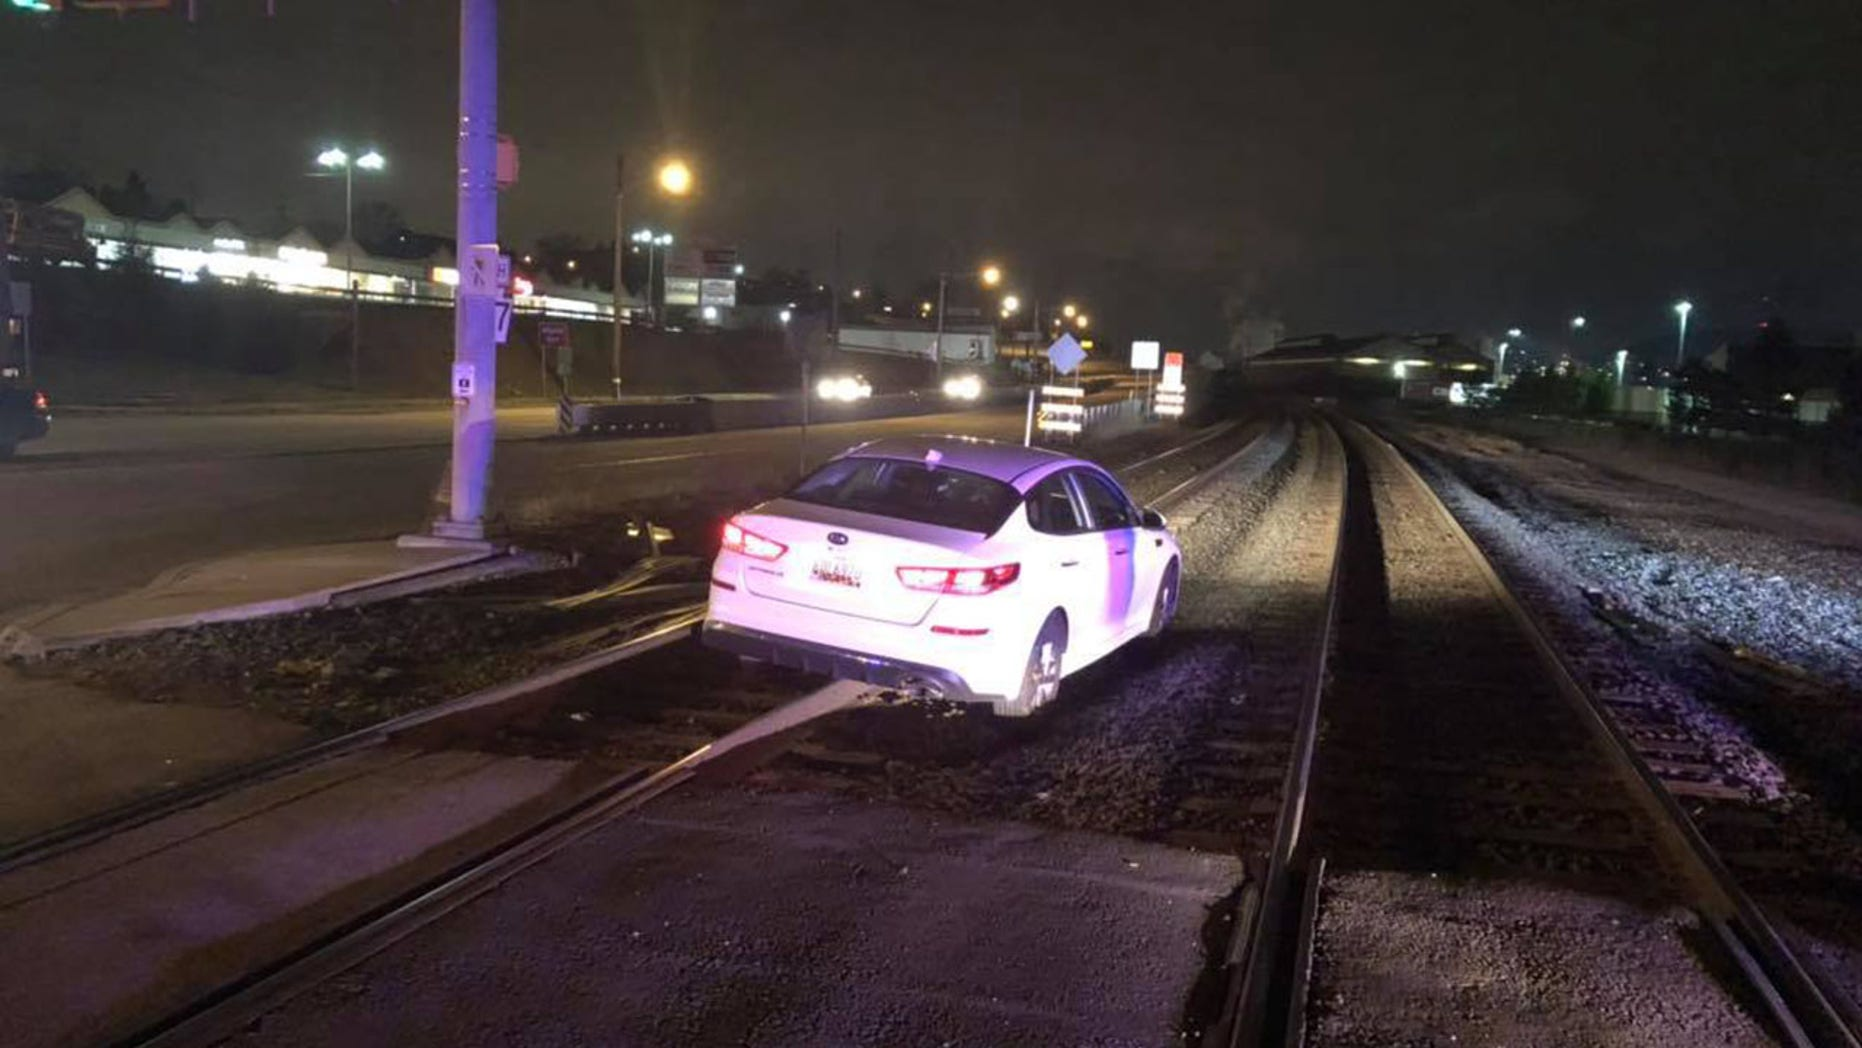 A woman says she followed her GPS, which led her to drive onto train tracks.